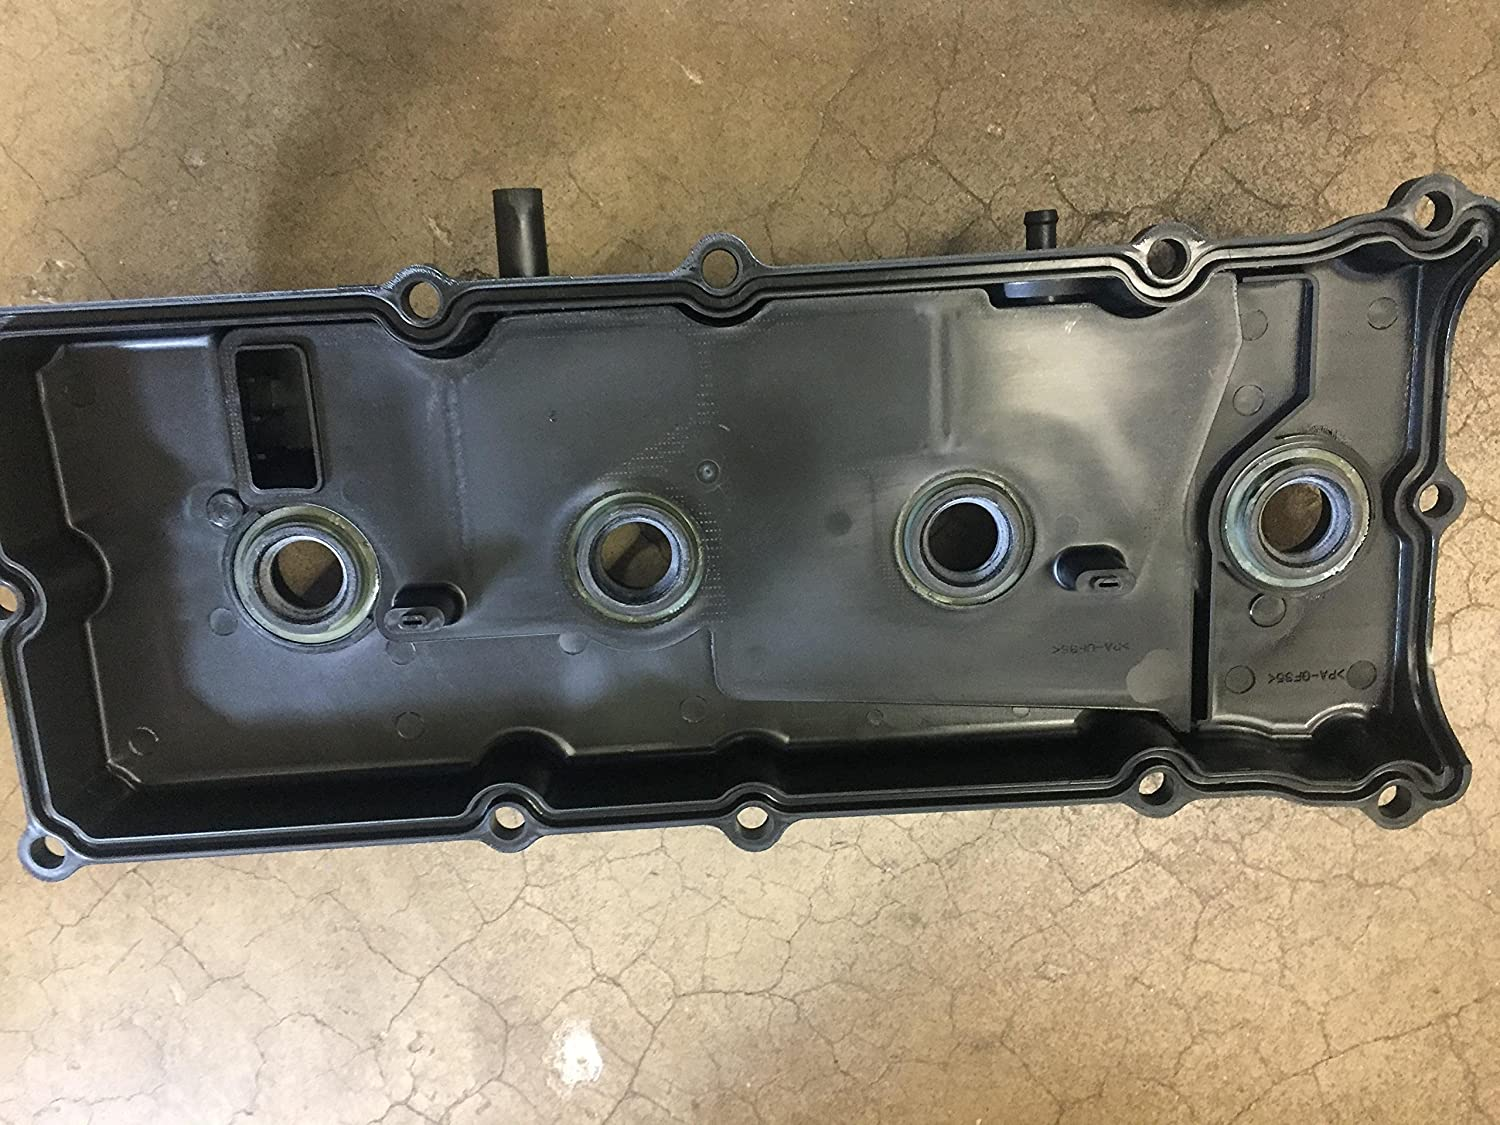 DRIVERS QX56 NEW OEM NISSAN VALVE COVER TITAN LEFT SIDE COVER ARMADA